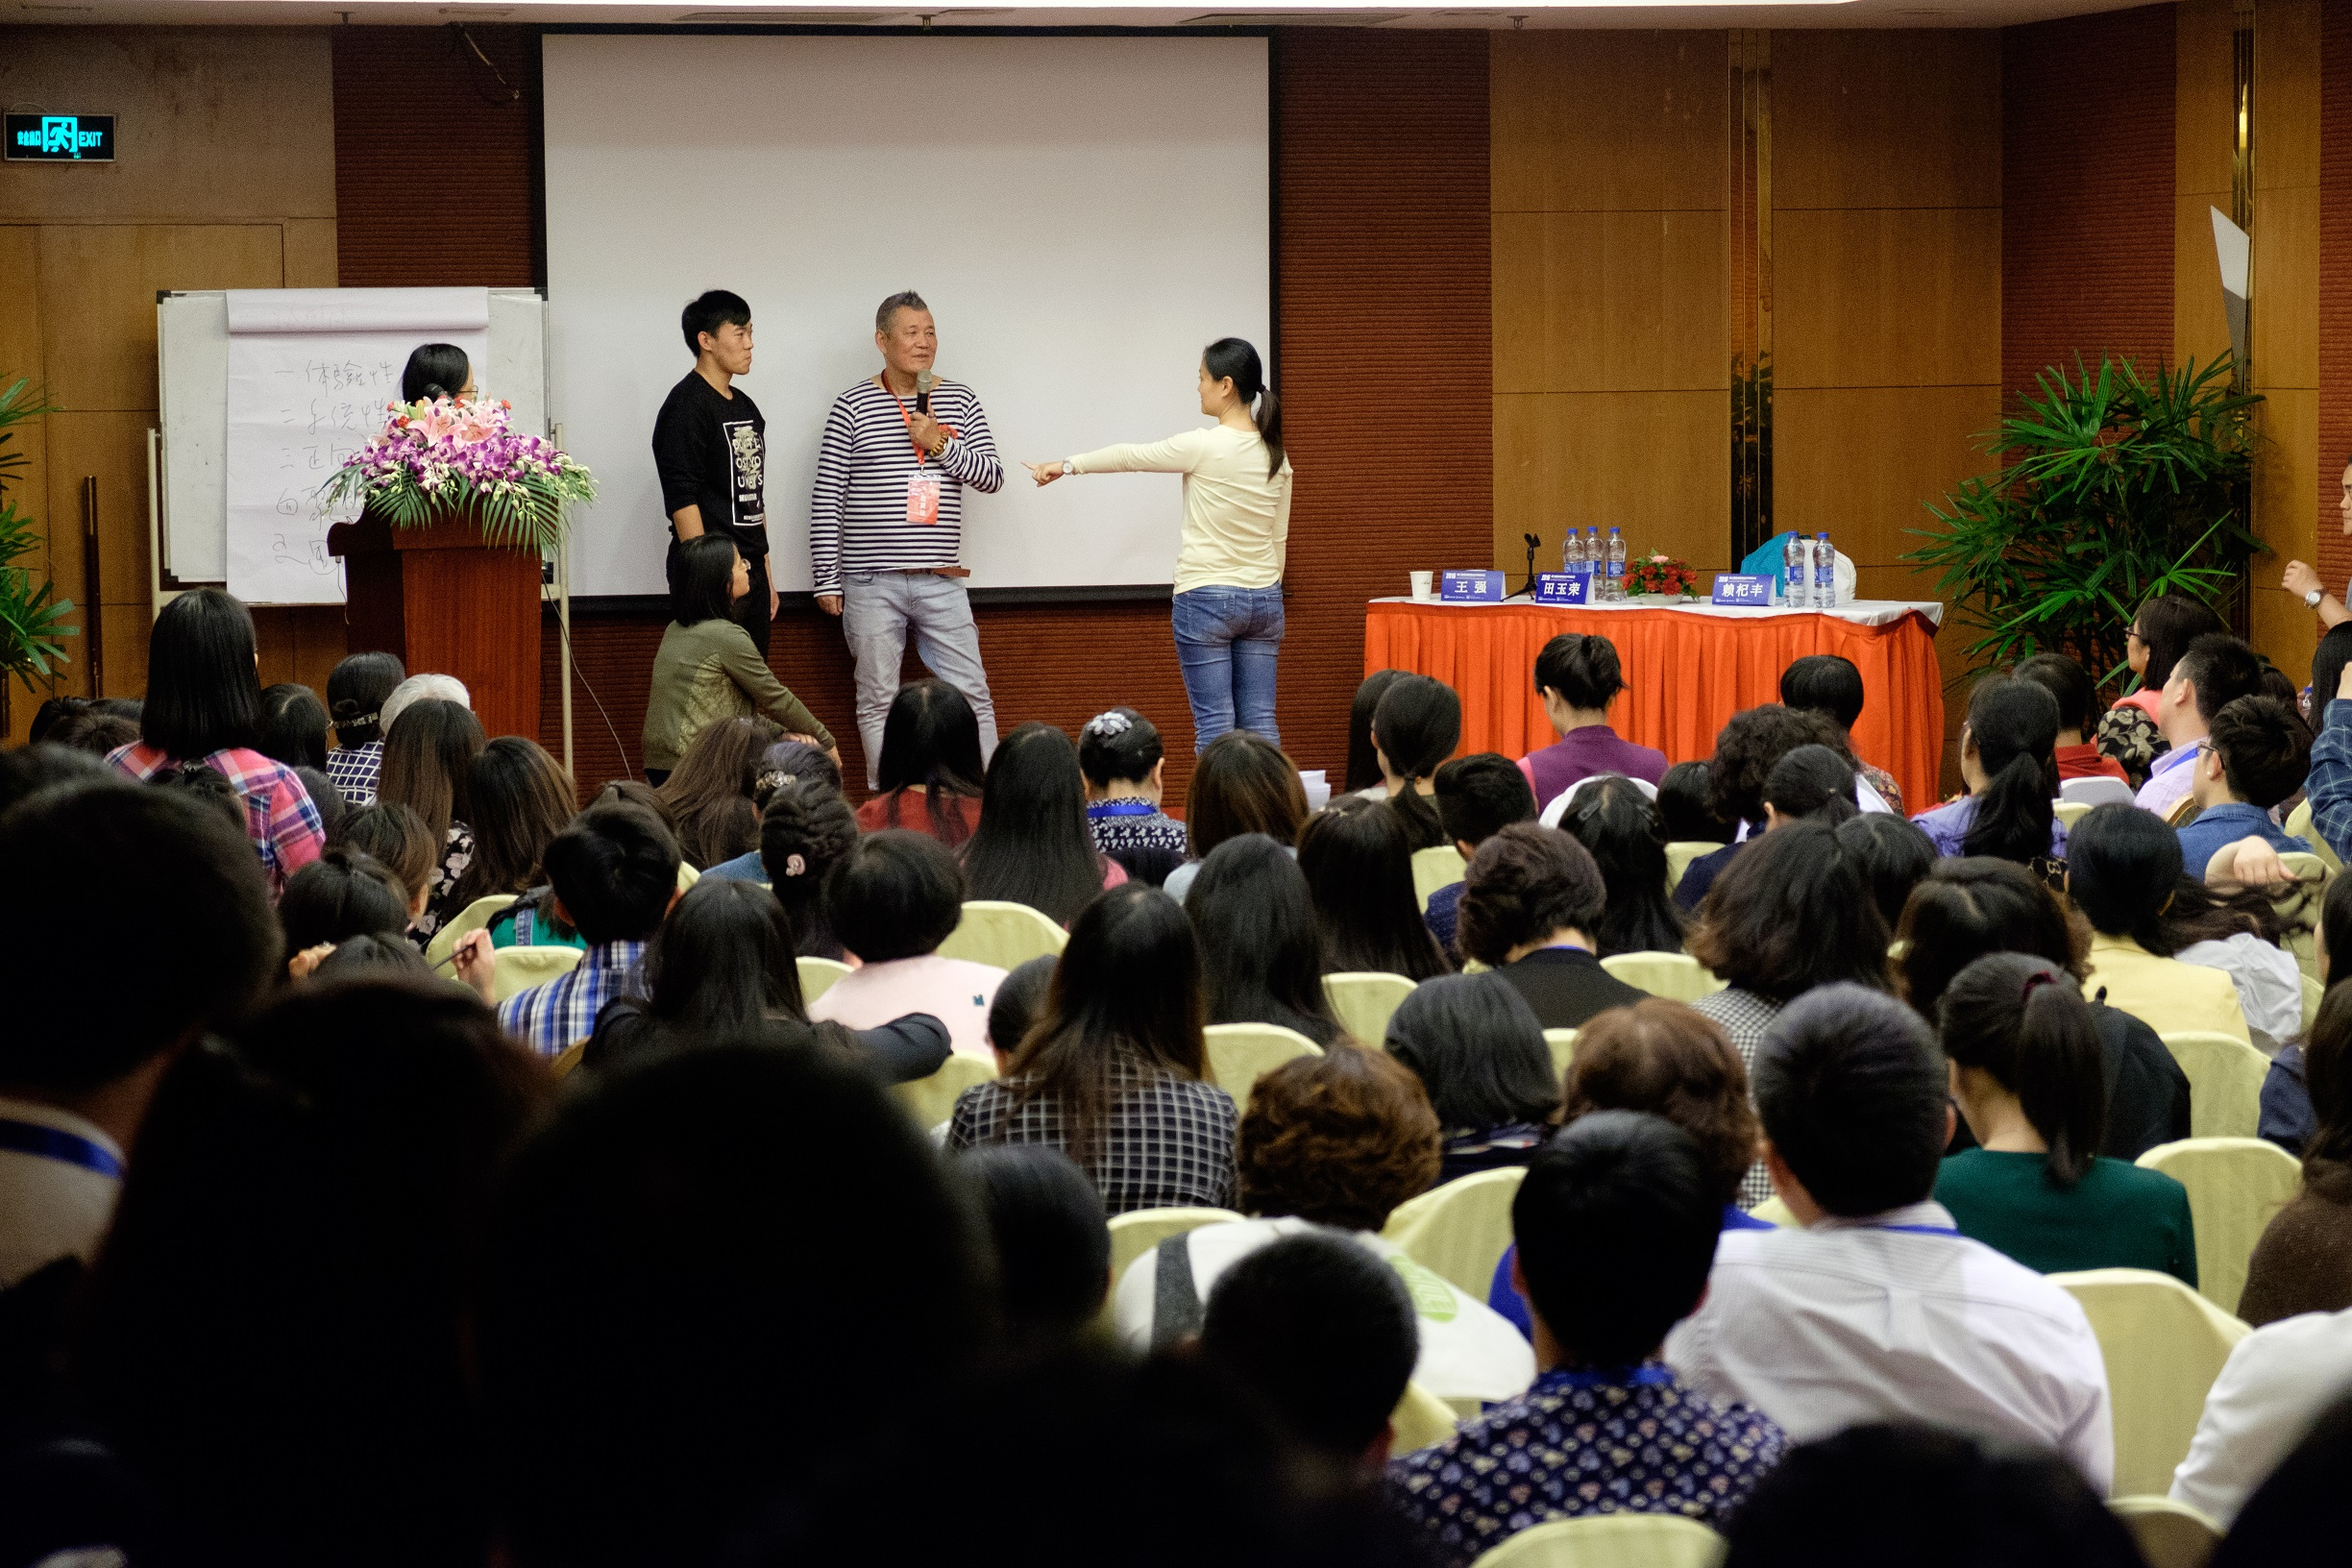 3rdAnnual Conference in Shanghai